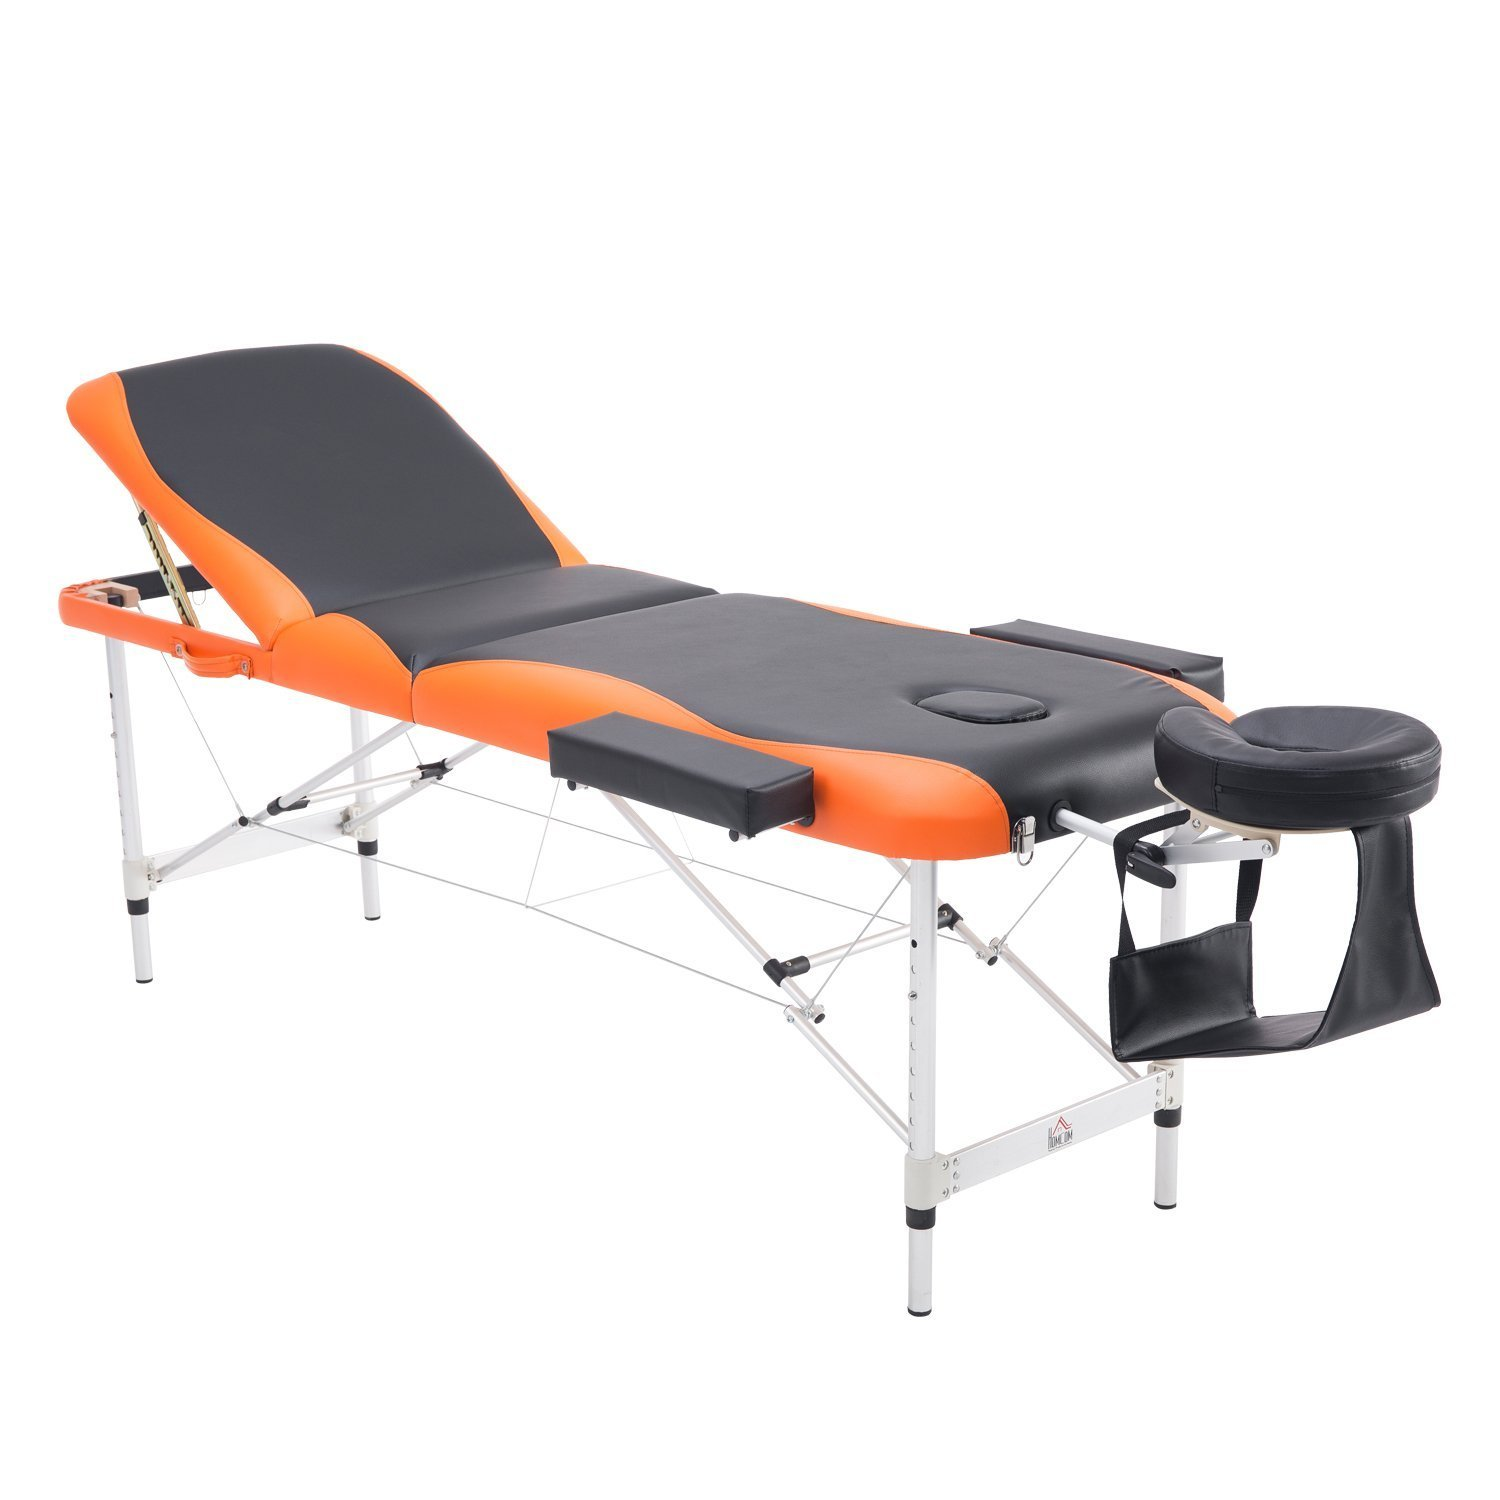 HOMCOM 73 3 Section Foldable Massage Table Professional Salon SPA Facial Couch Bed (Black/Orange) Aosom Canada CA700-0390231